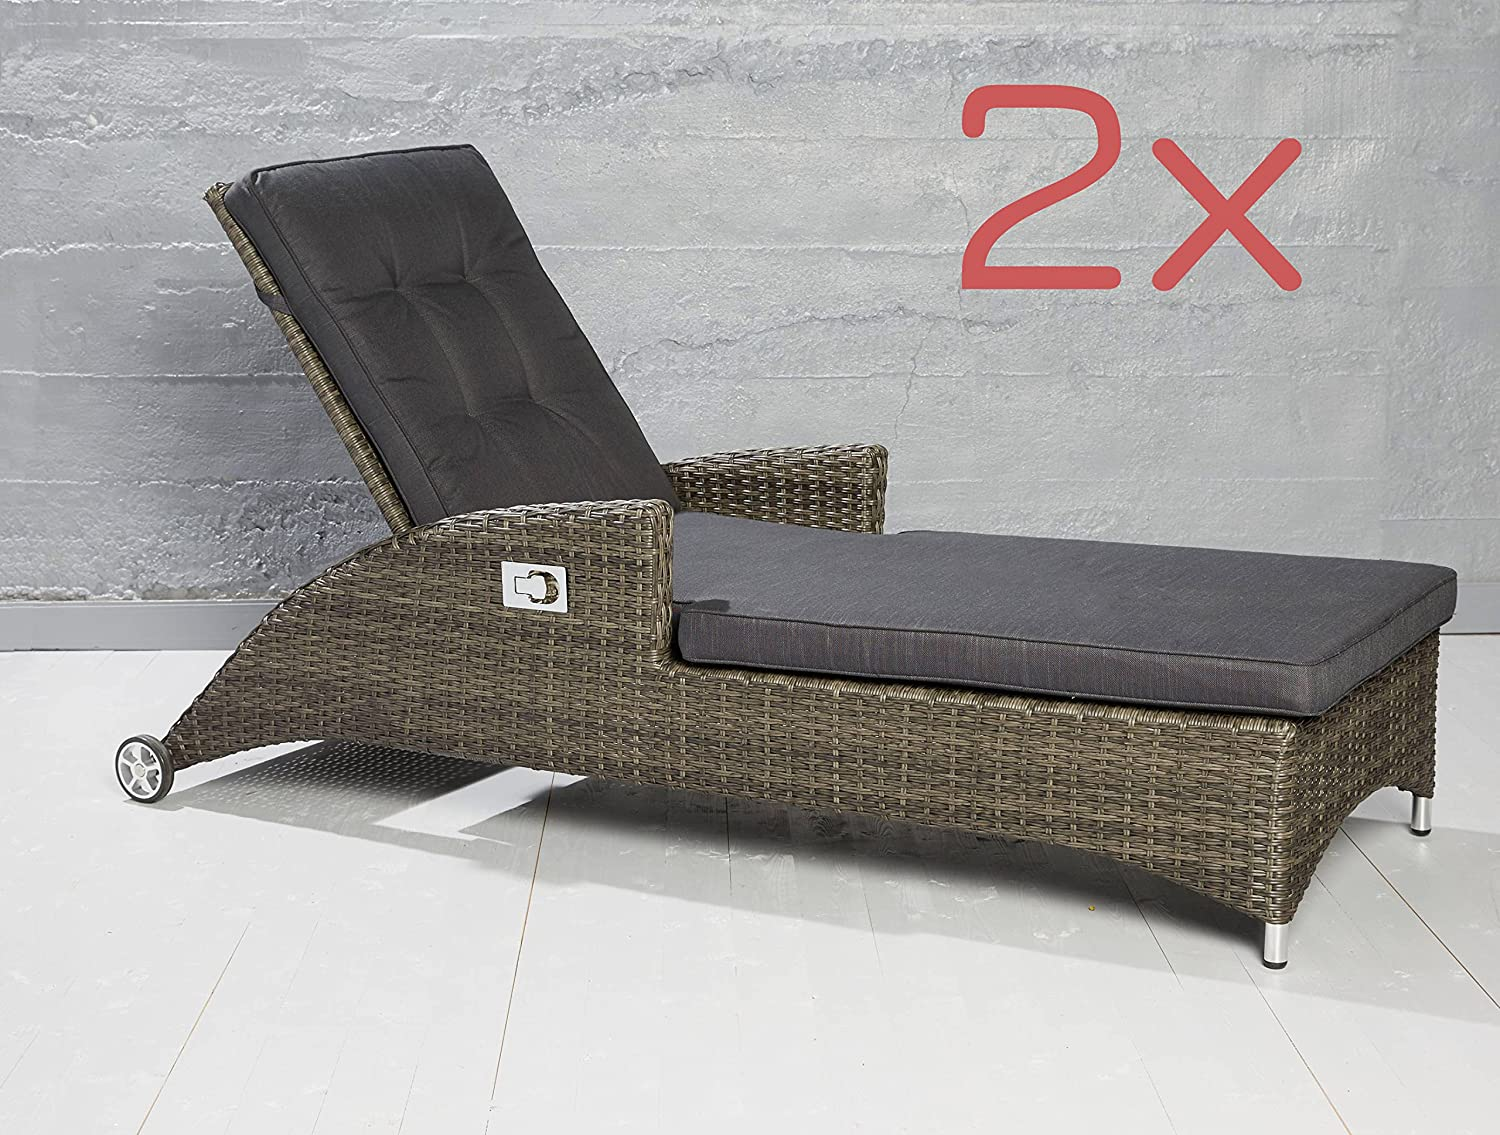 2er set poly rattan sonnenliege gartenliege relaxliege gartenm bel verstellbar online bestellen. Black Bedroom Furniture Sets. Home Design Ideas